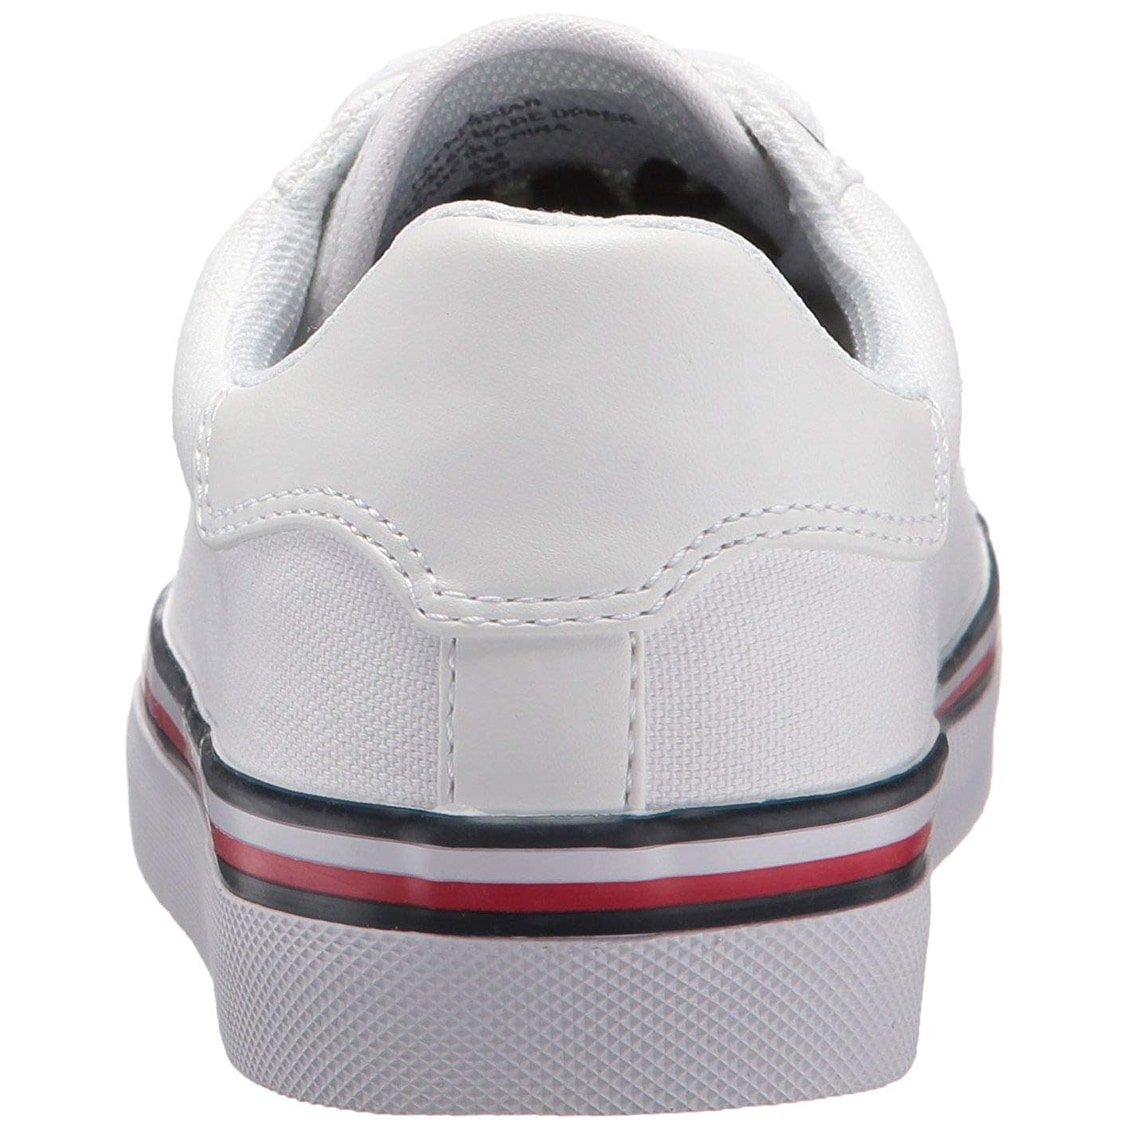 2c8aecc9 Shop Tommy Hilfiger Womens Fressian Fabric Low Top Lace Up Fashion Sneakers  - Free Shipping On Orders Over $45 - Overstock - 28025211